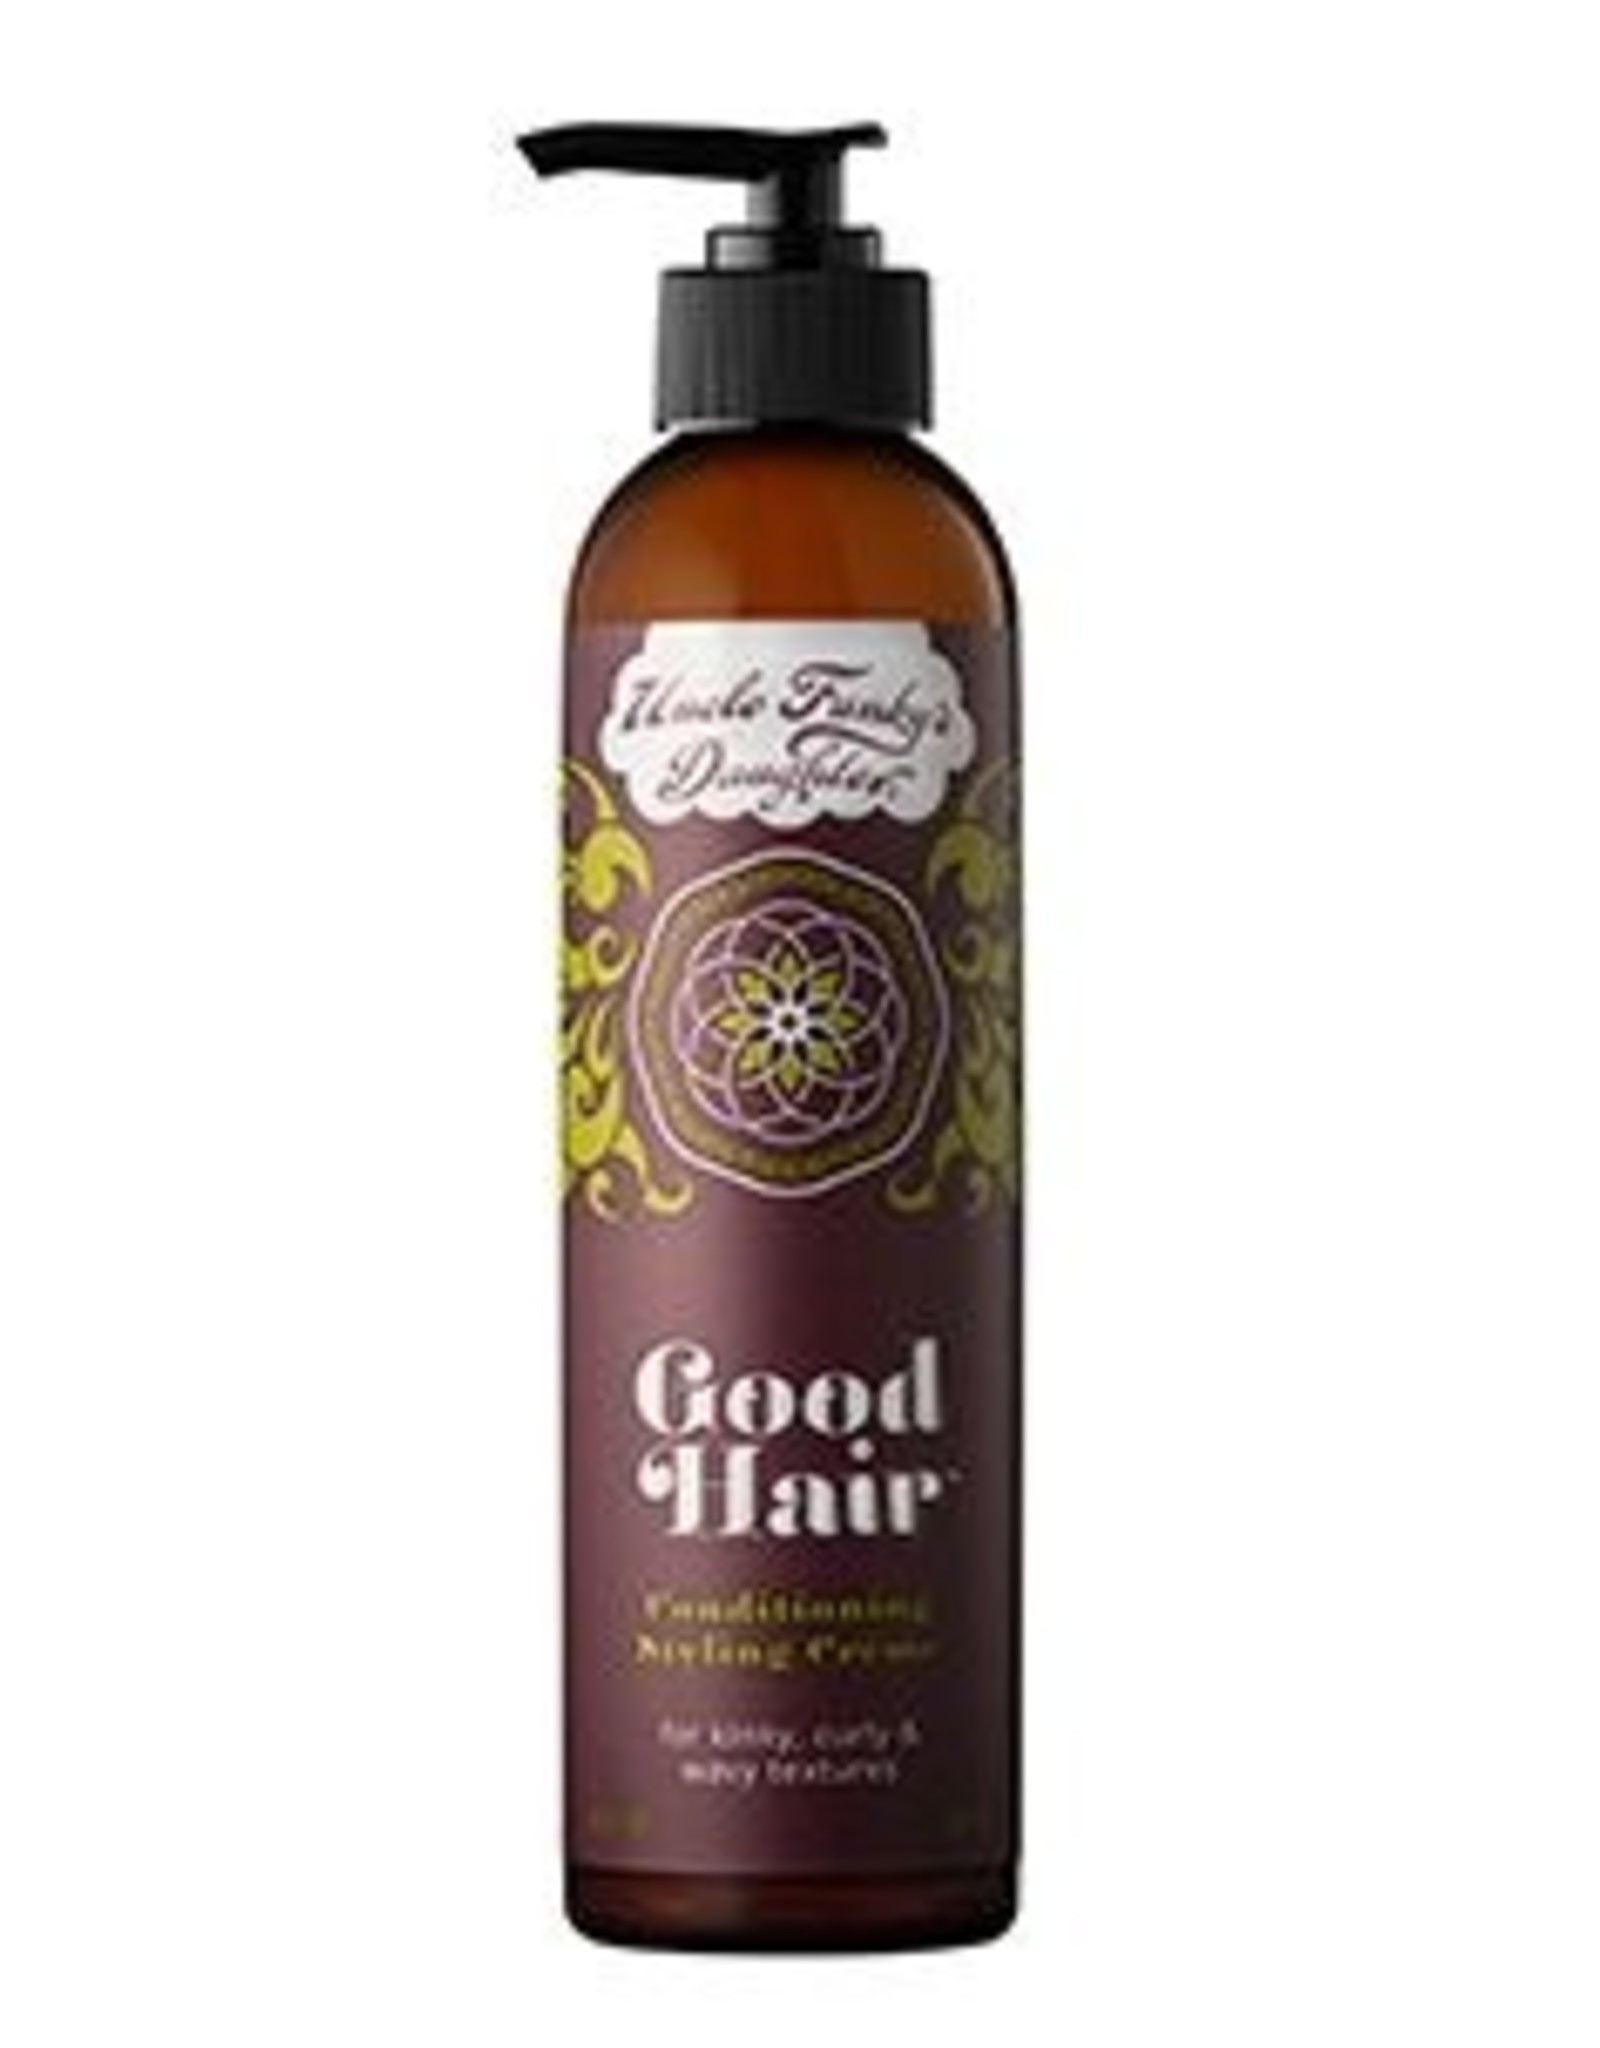 UNCLE FUNKY GOOD HAIR CONDITIONING STYLE CREAM 8fl oz